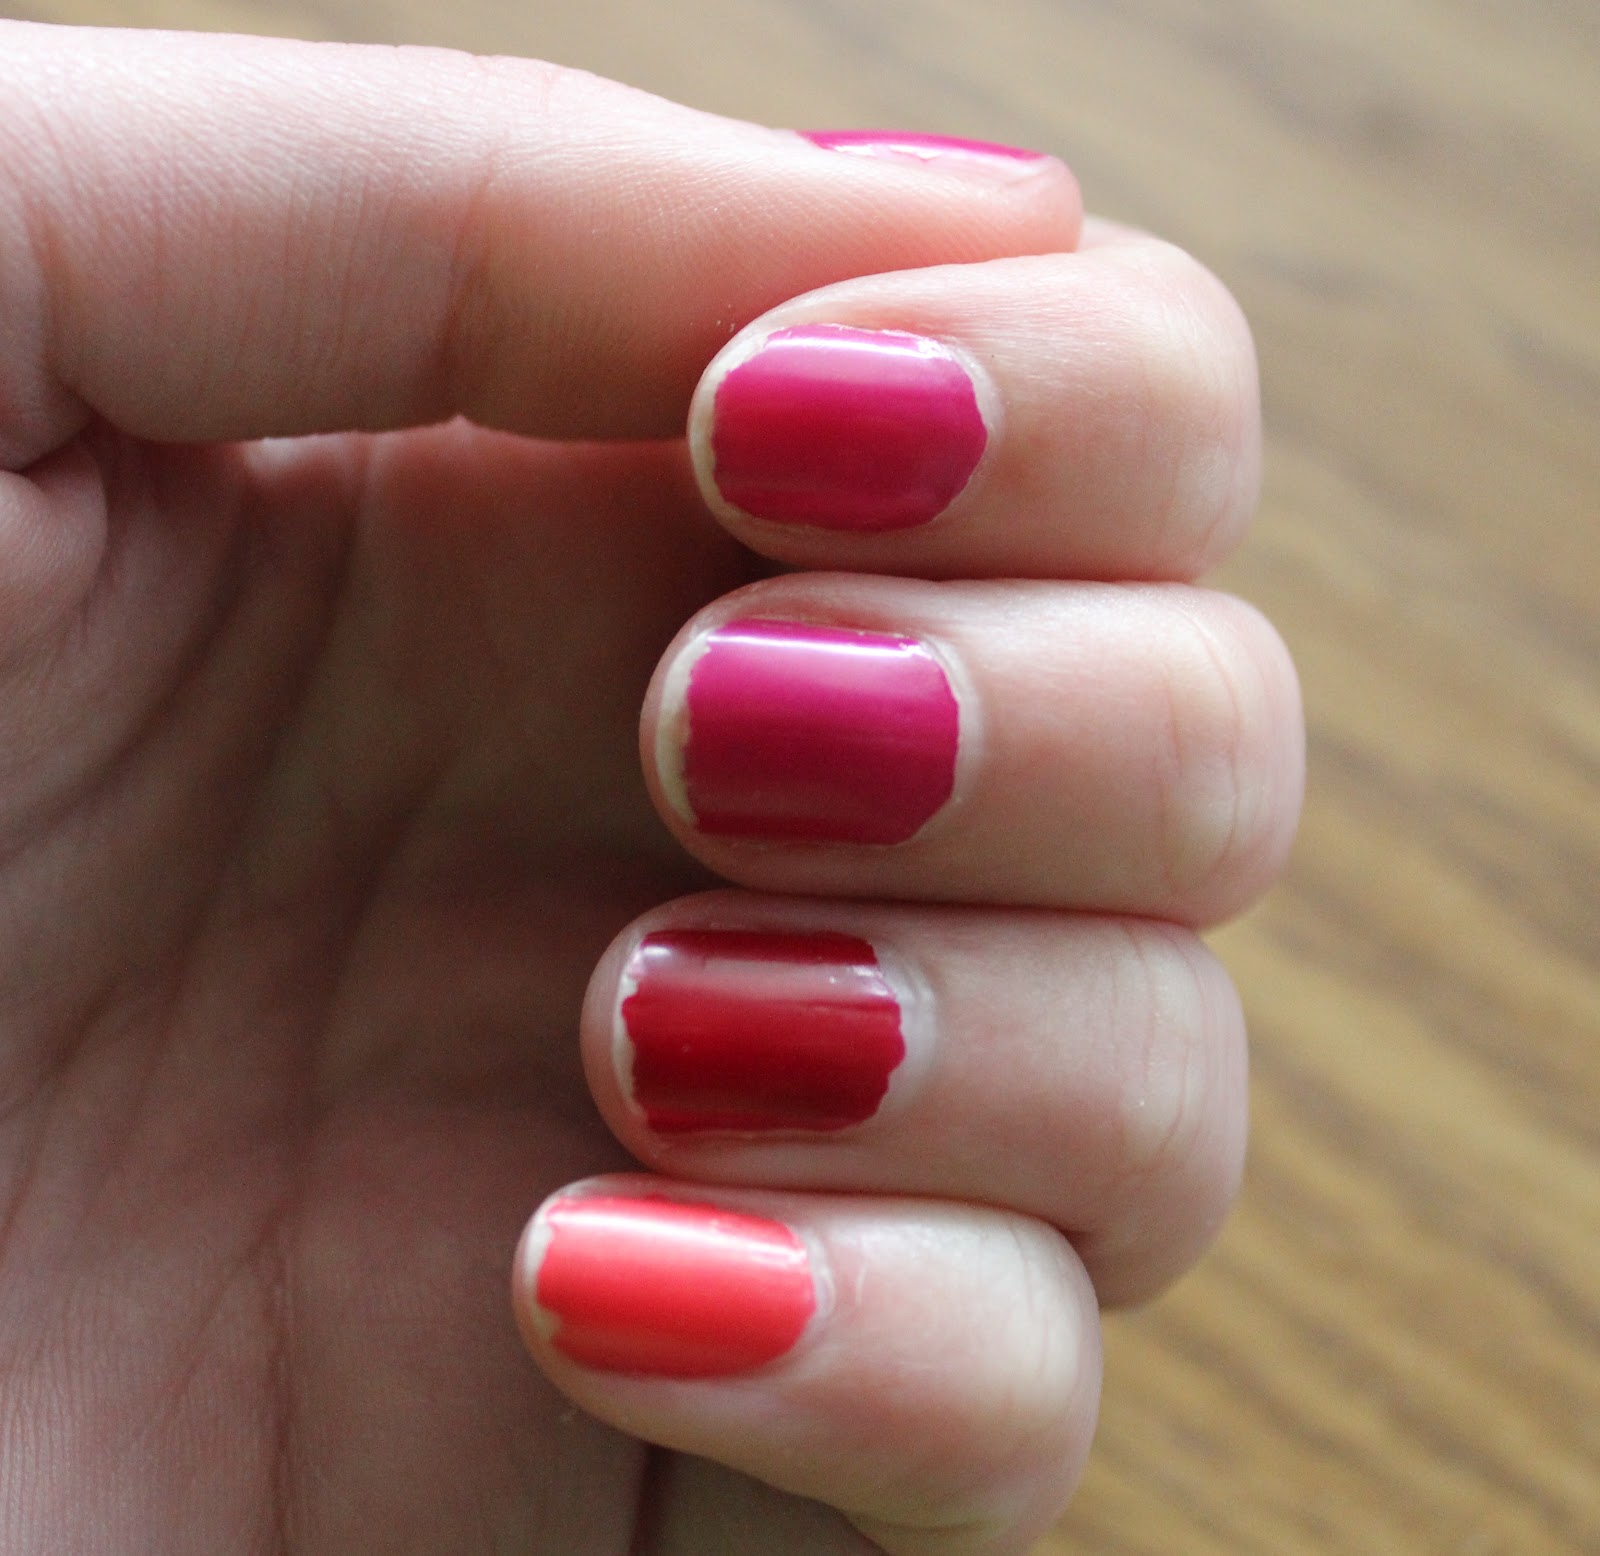 How To Make Nail Polish Not Chip: Bourjois 10 Days No Chips Nail Polish: Shades 16, 19 And